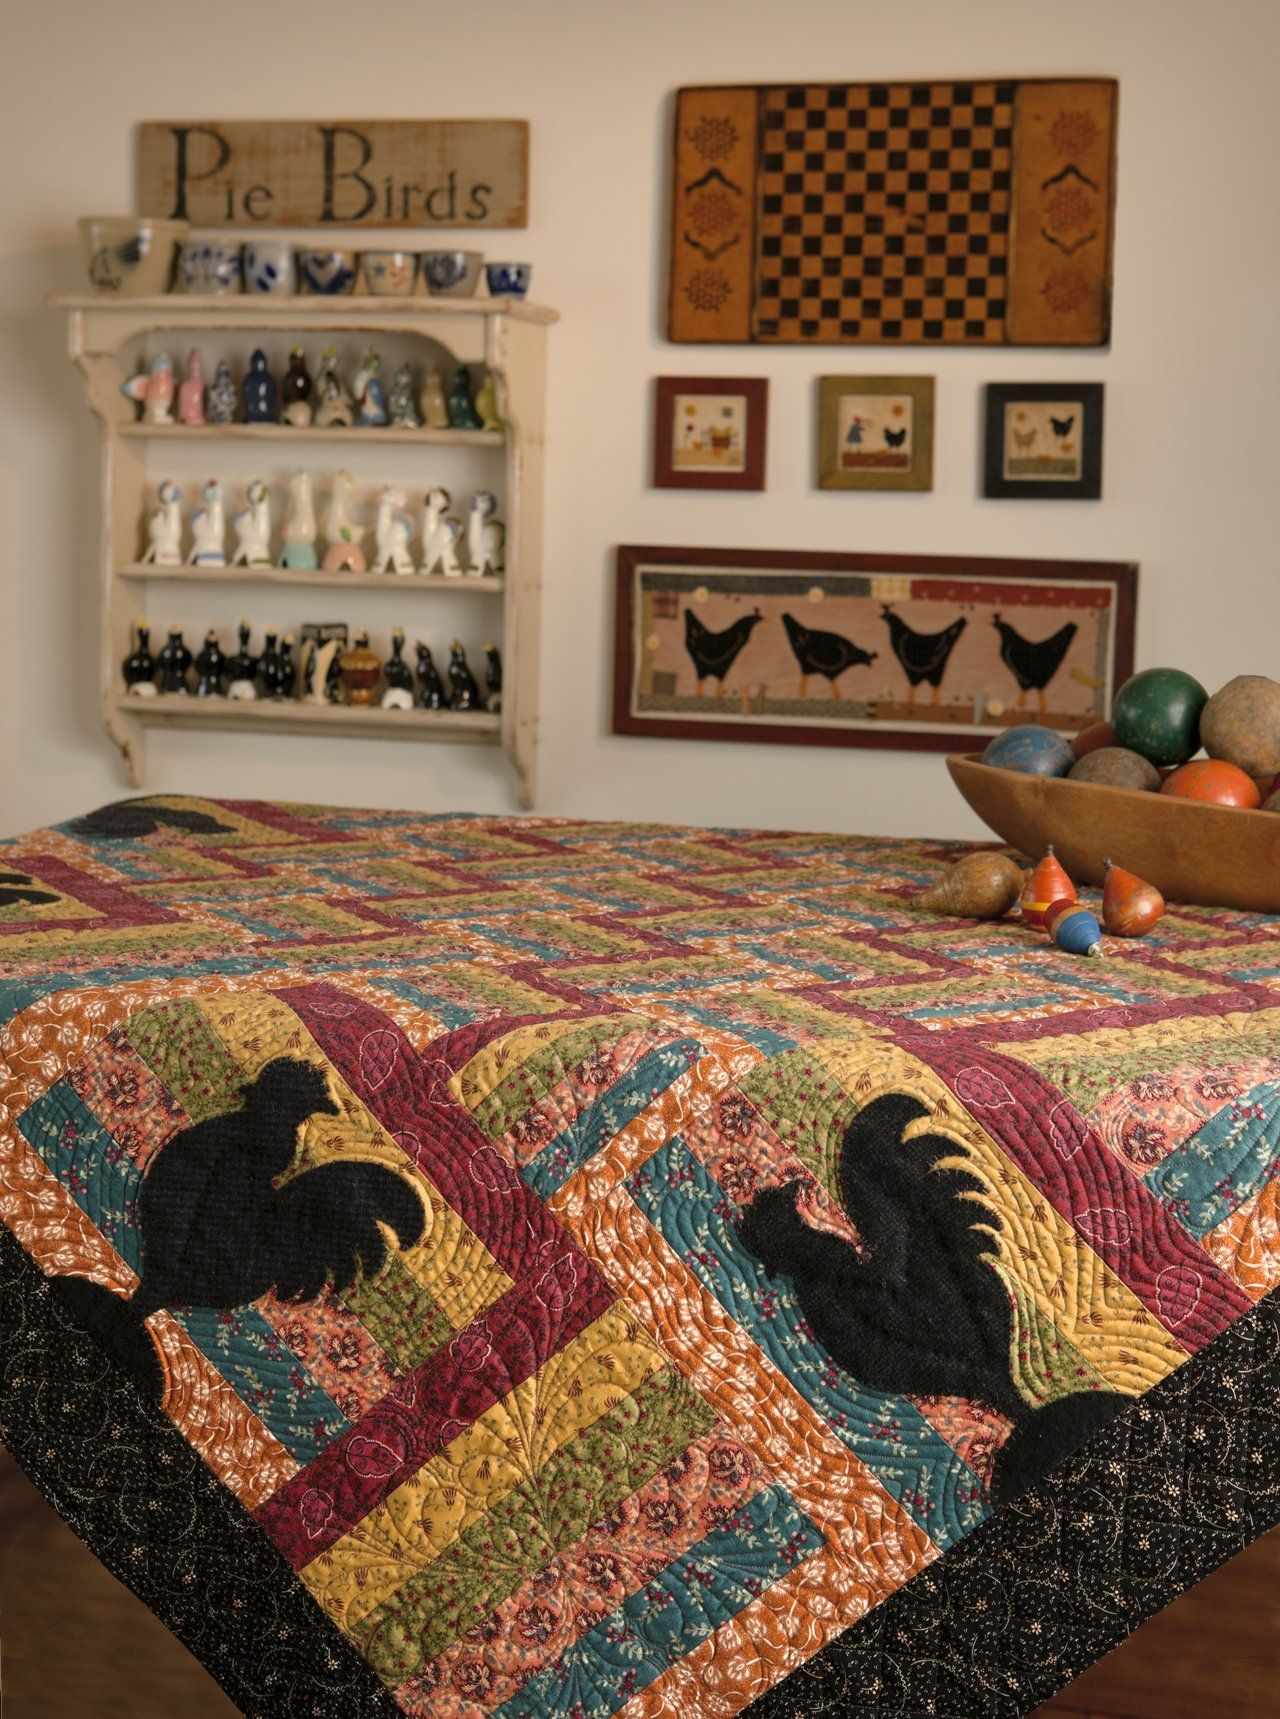 Simple Graces: Charming Quilts and Companion Projects: Kim Diehl: 9781564779922: Amazon.com: Books